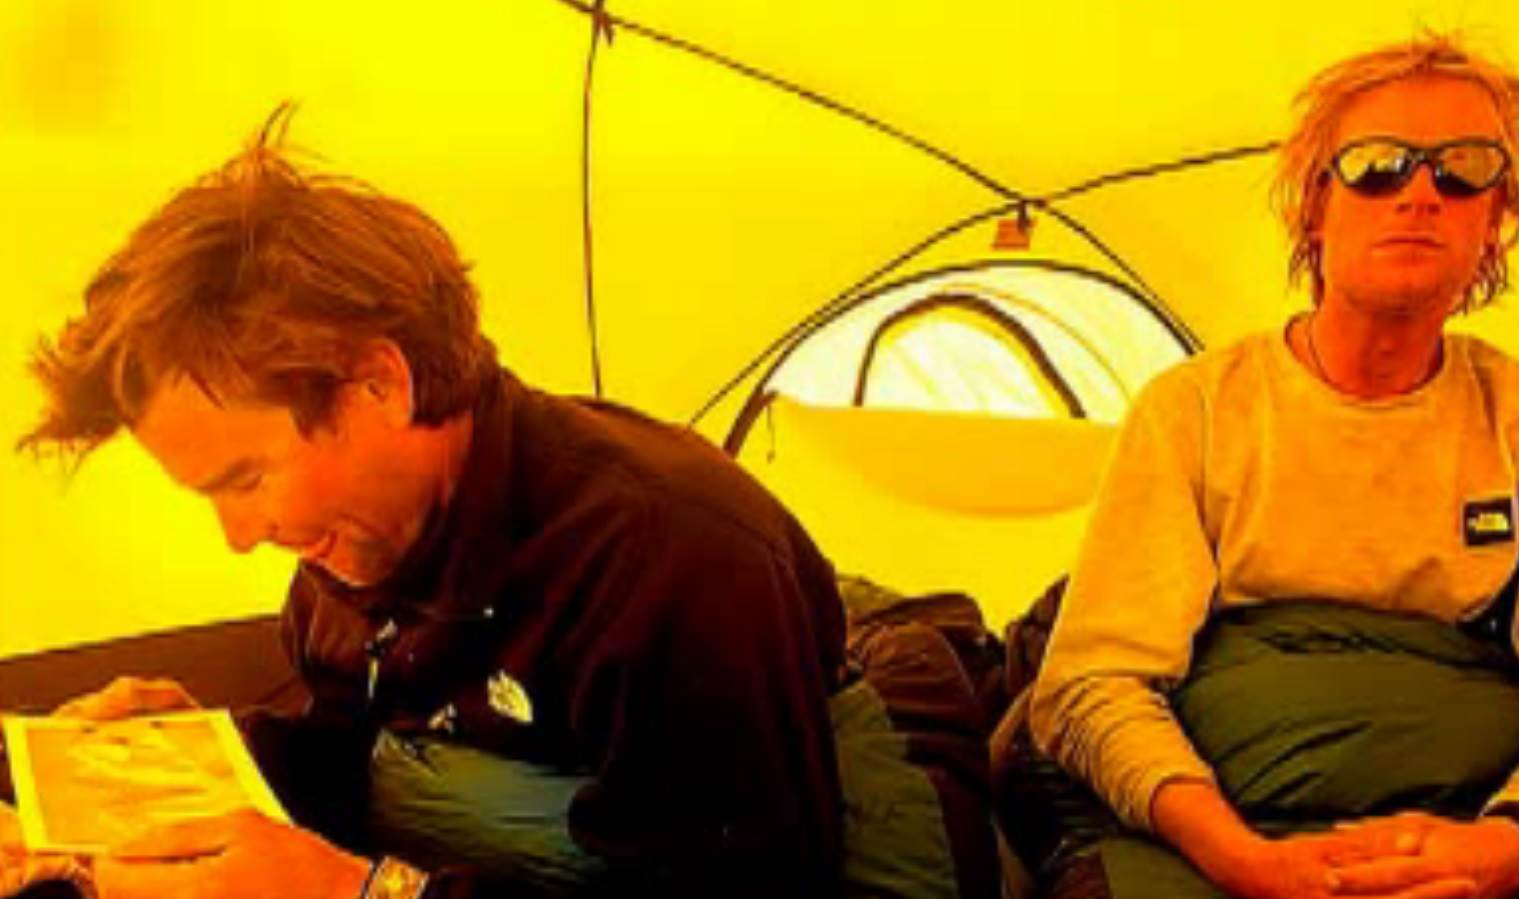 Alex Lowe and Conrad Anker in an undated photo. Lowe and cameraman David Bridges were killed in an avalanche on a Tibetan mountain in 1999, while Anker was injured.